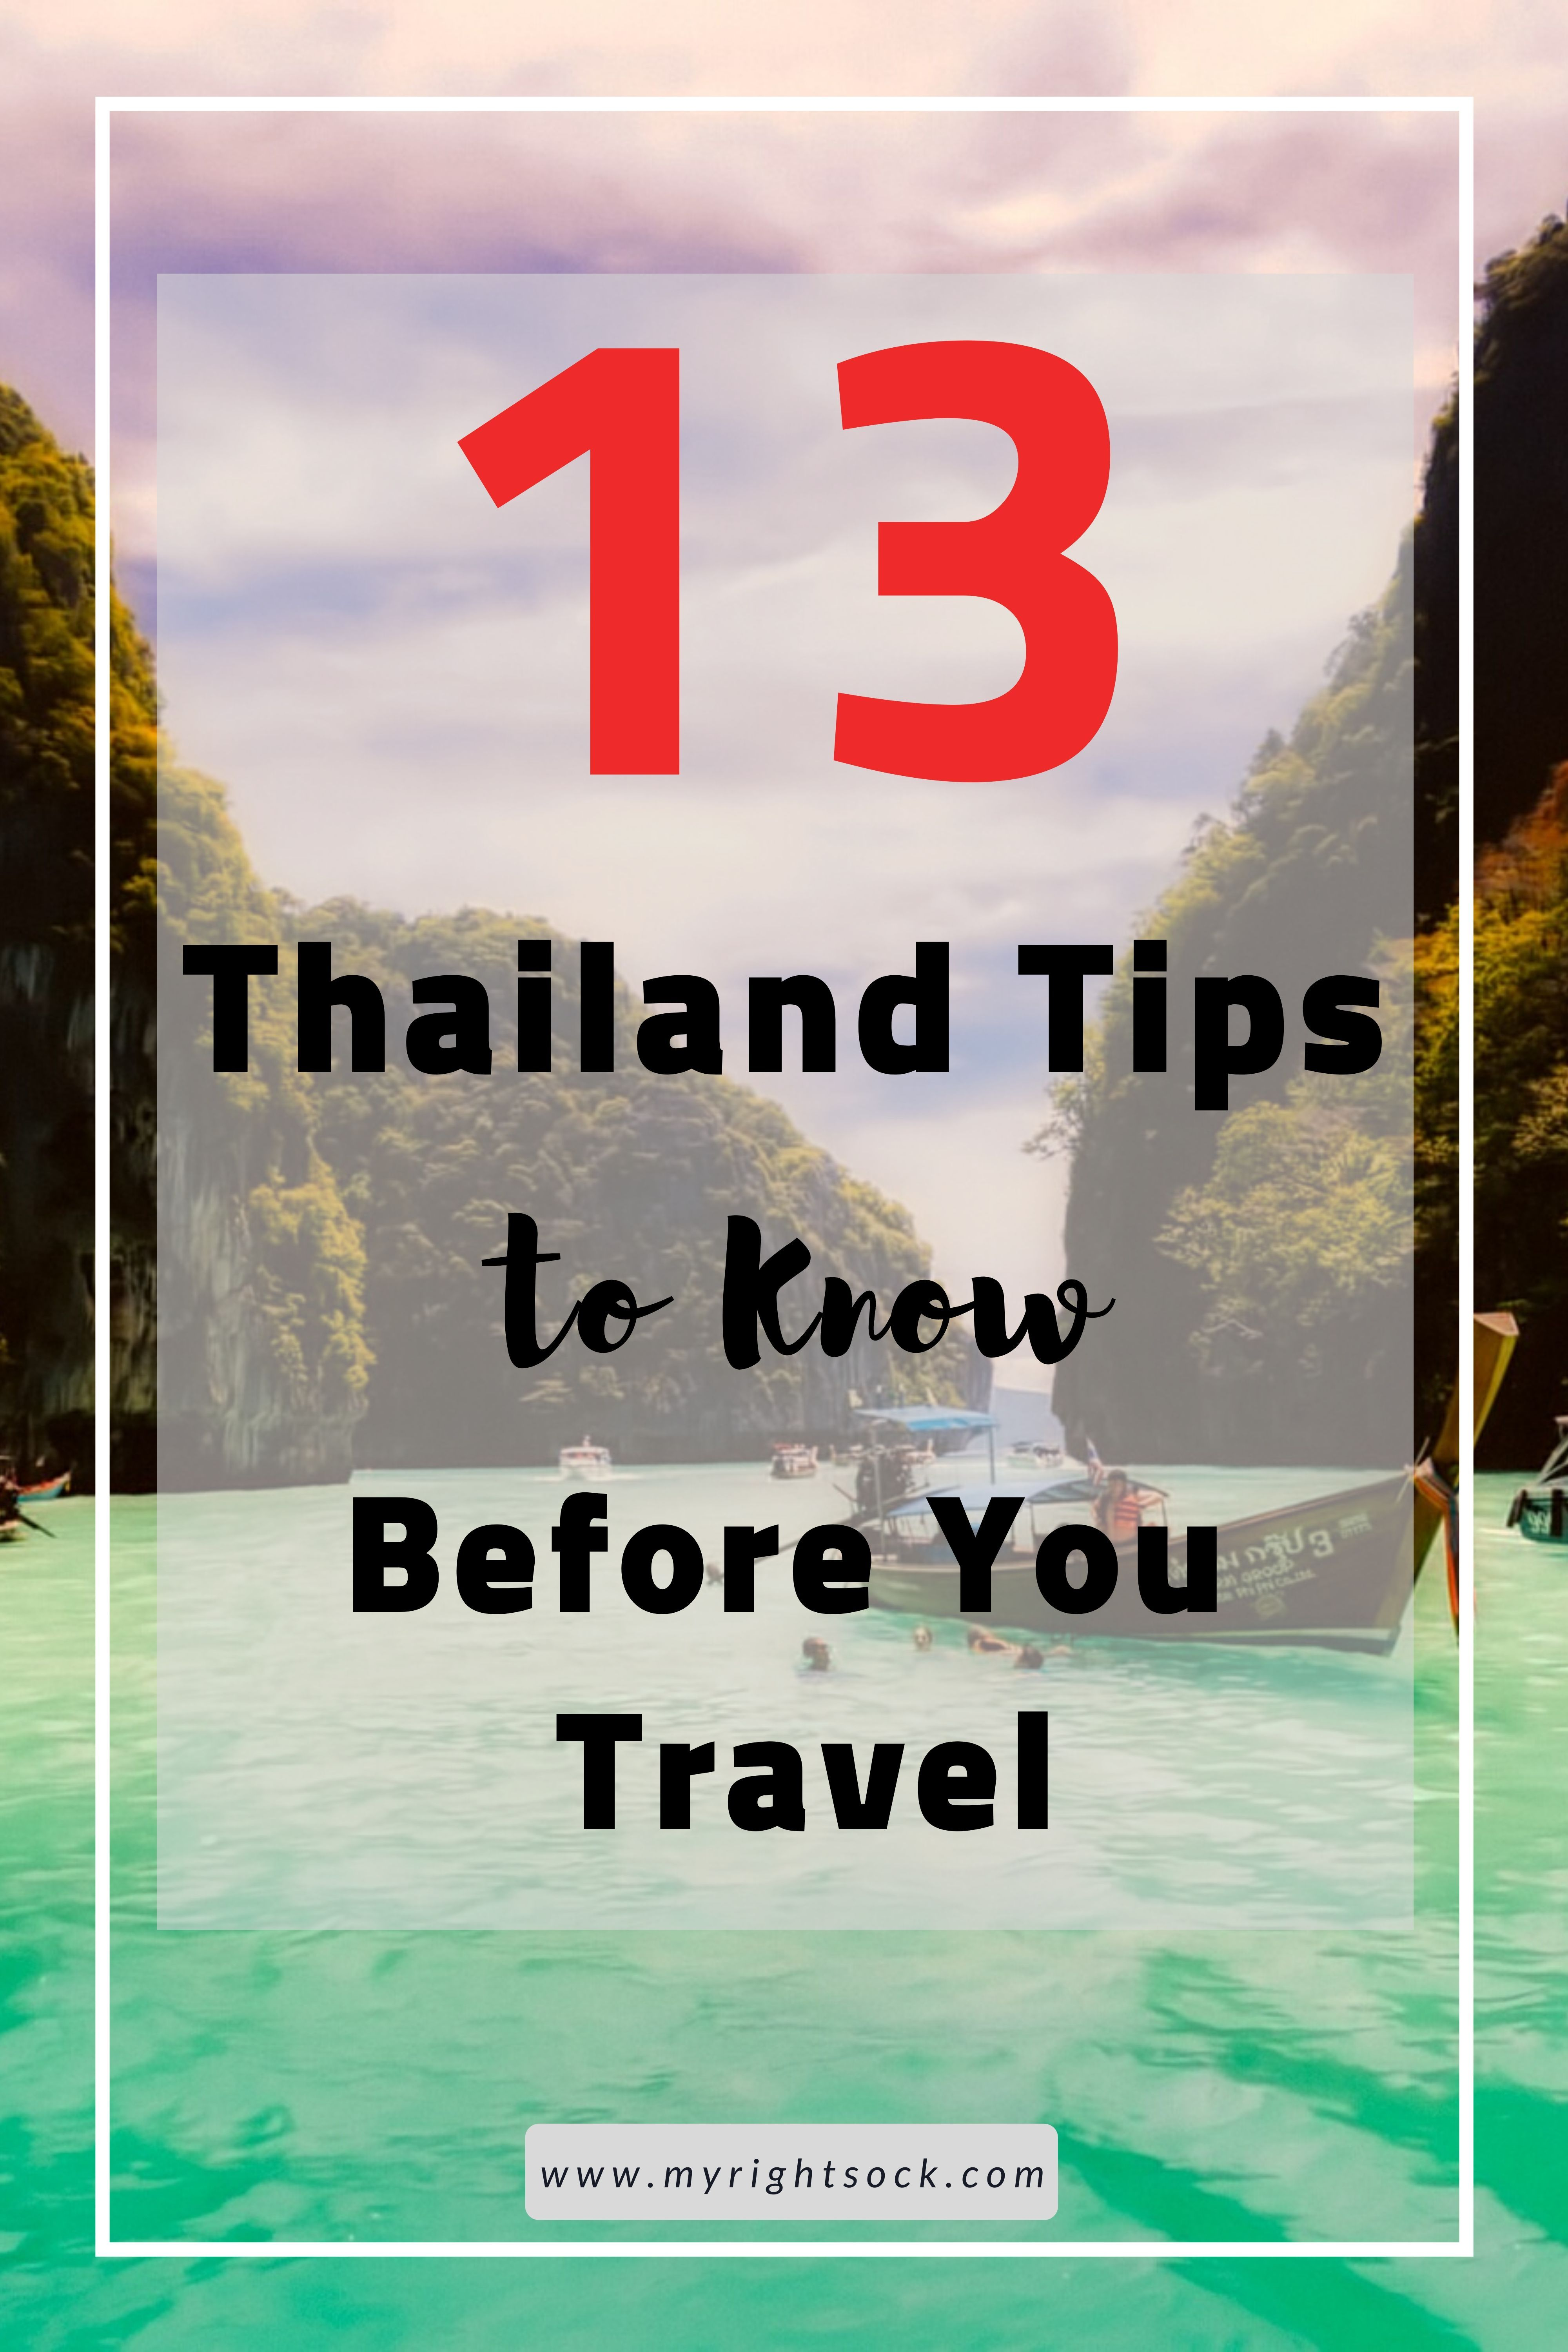 13 Thailand Travel Tips -   19 travel destinations Thailand country ideas